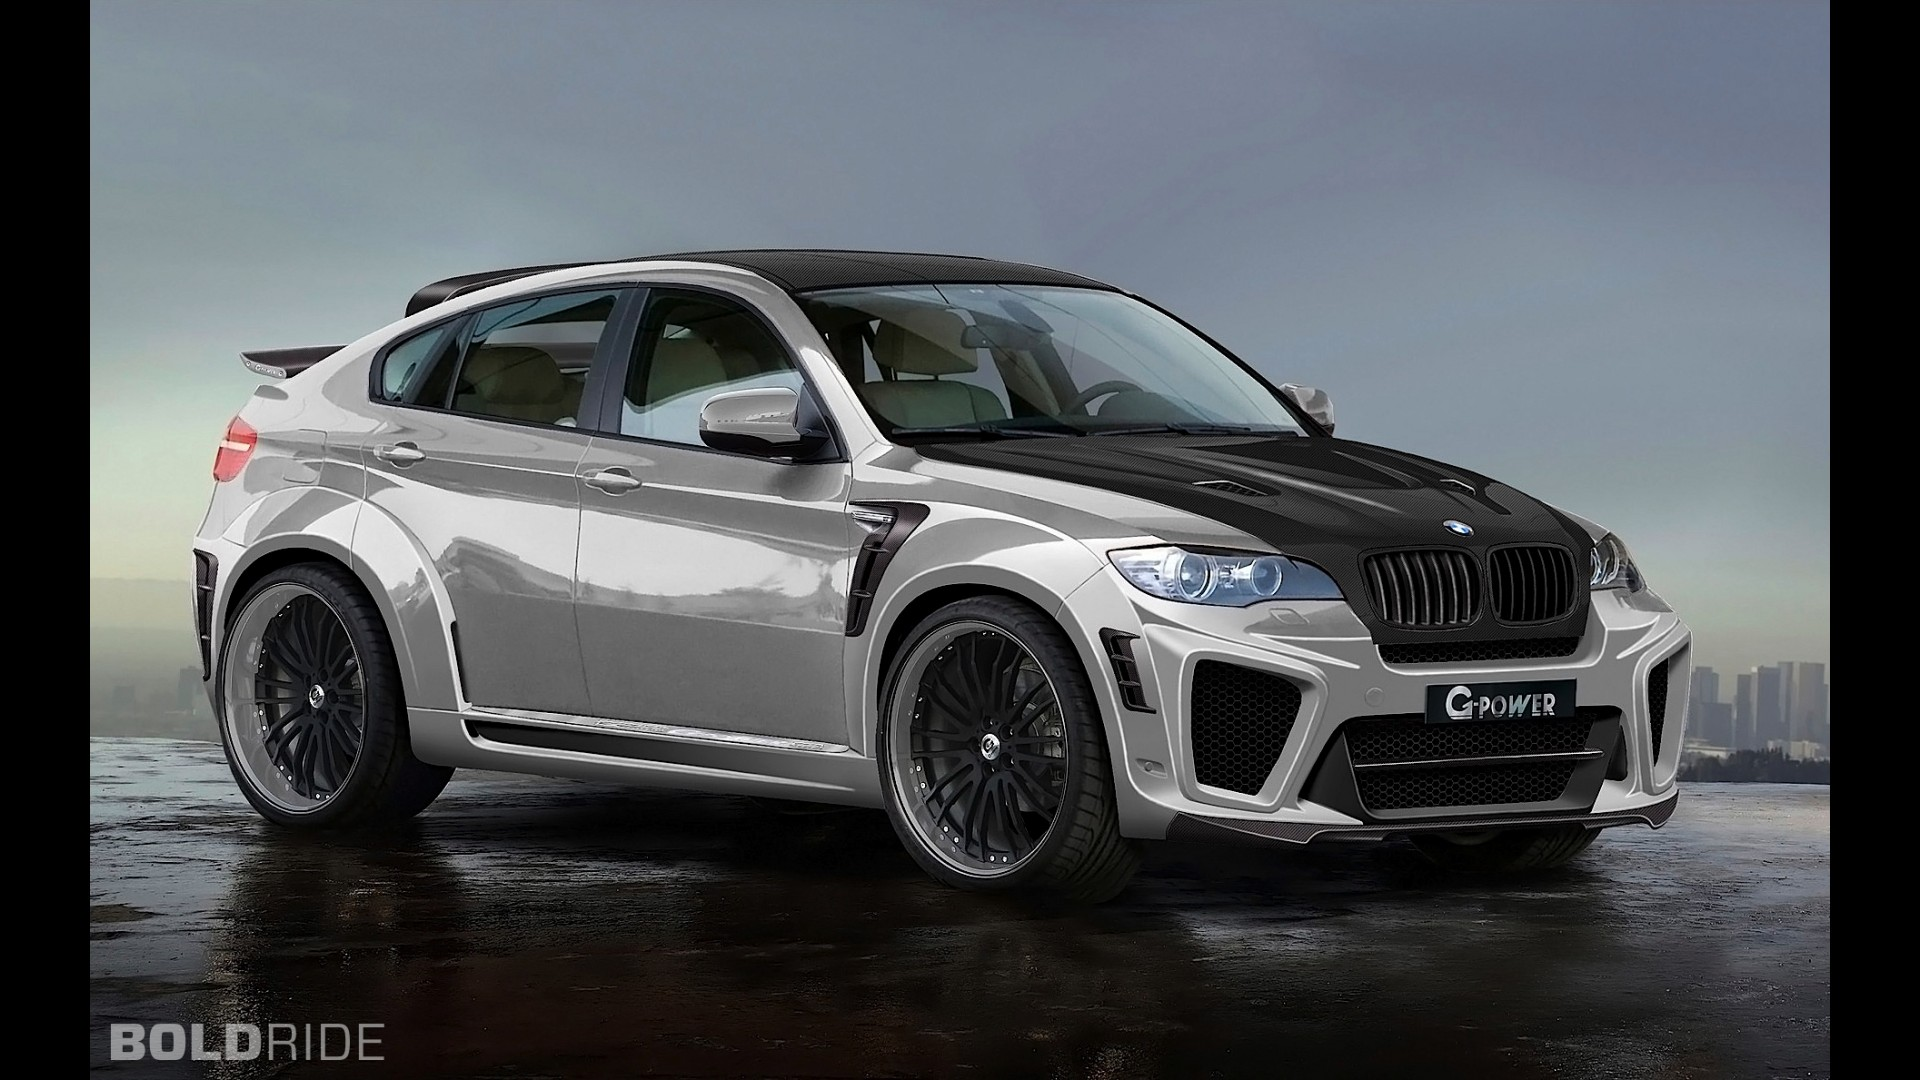 G Power Bmw X6 M Typhoon Rs Ultimate V10